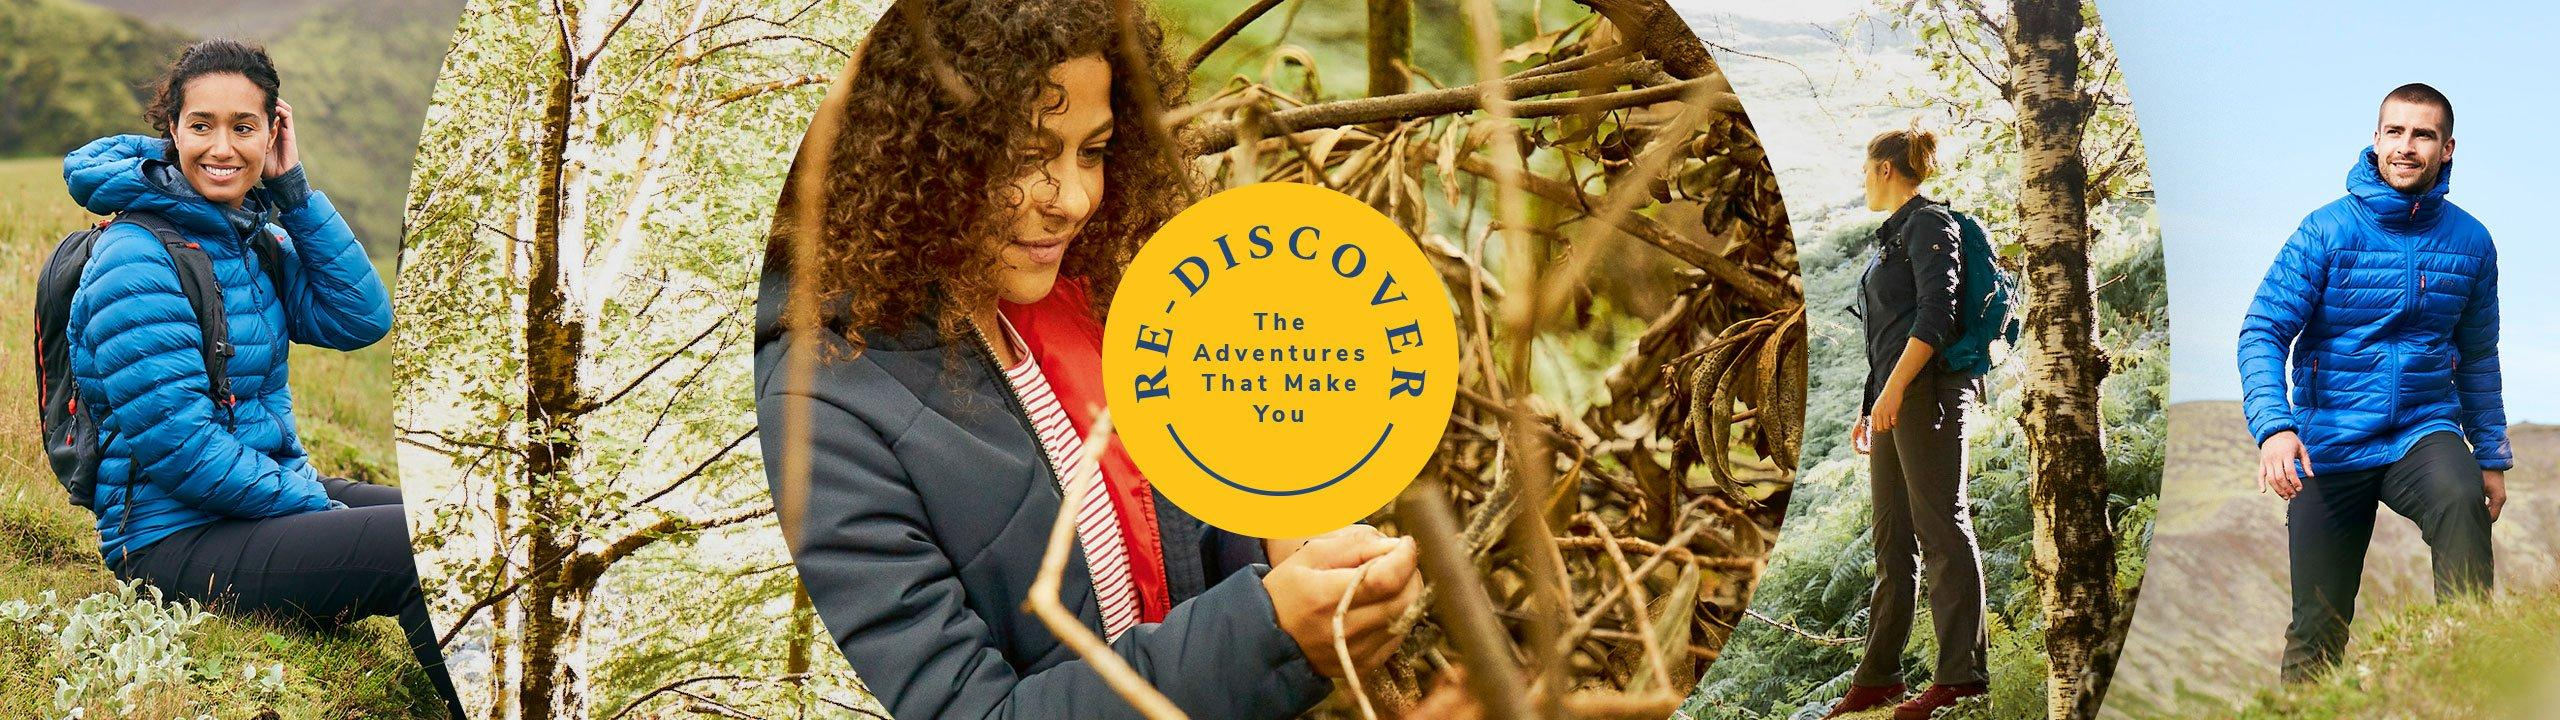 Rediscover The Adventures That Make You